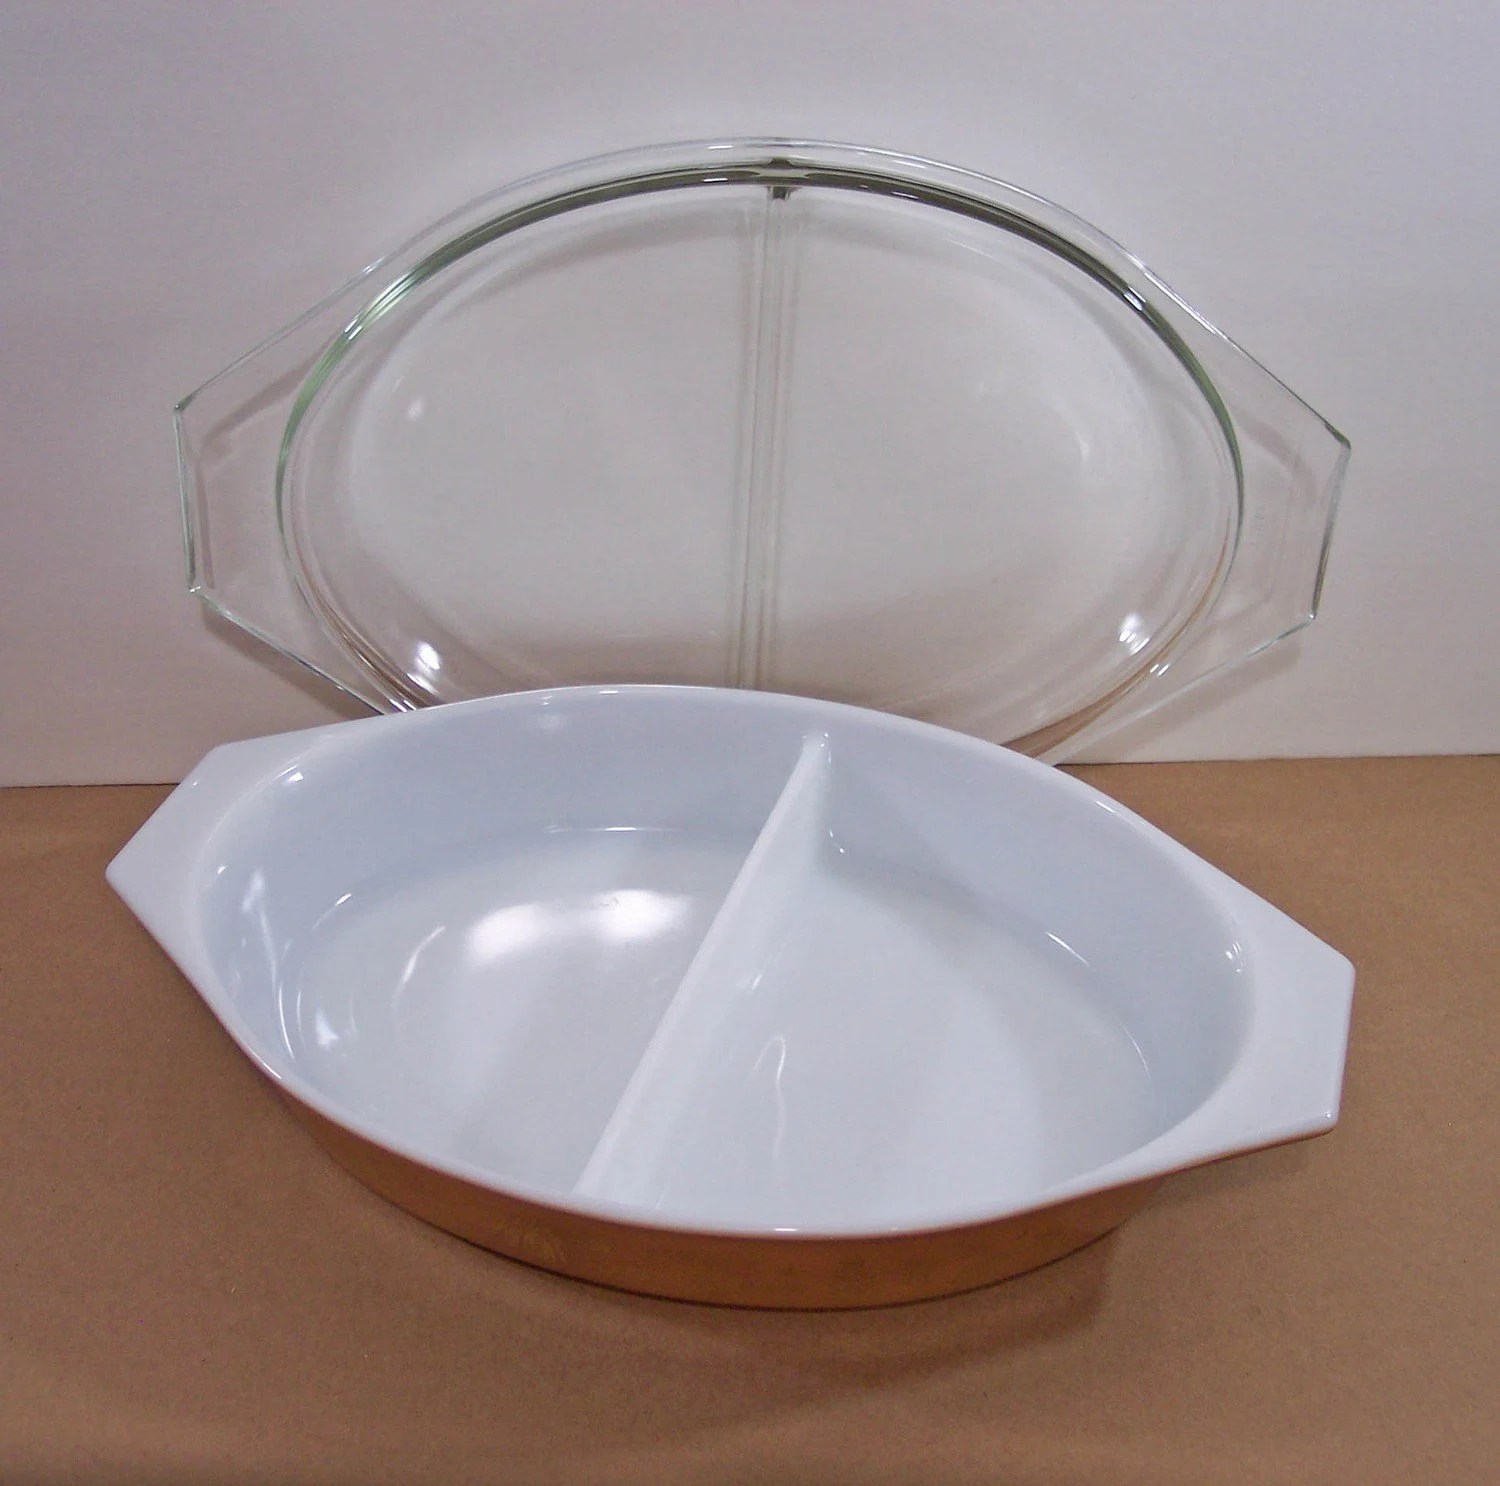 Ovenware Pyrex Divided Dish. Ovenware Baking Dish By